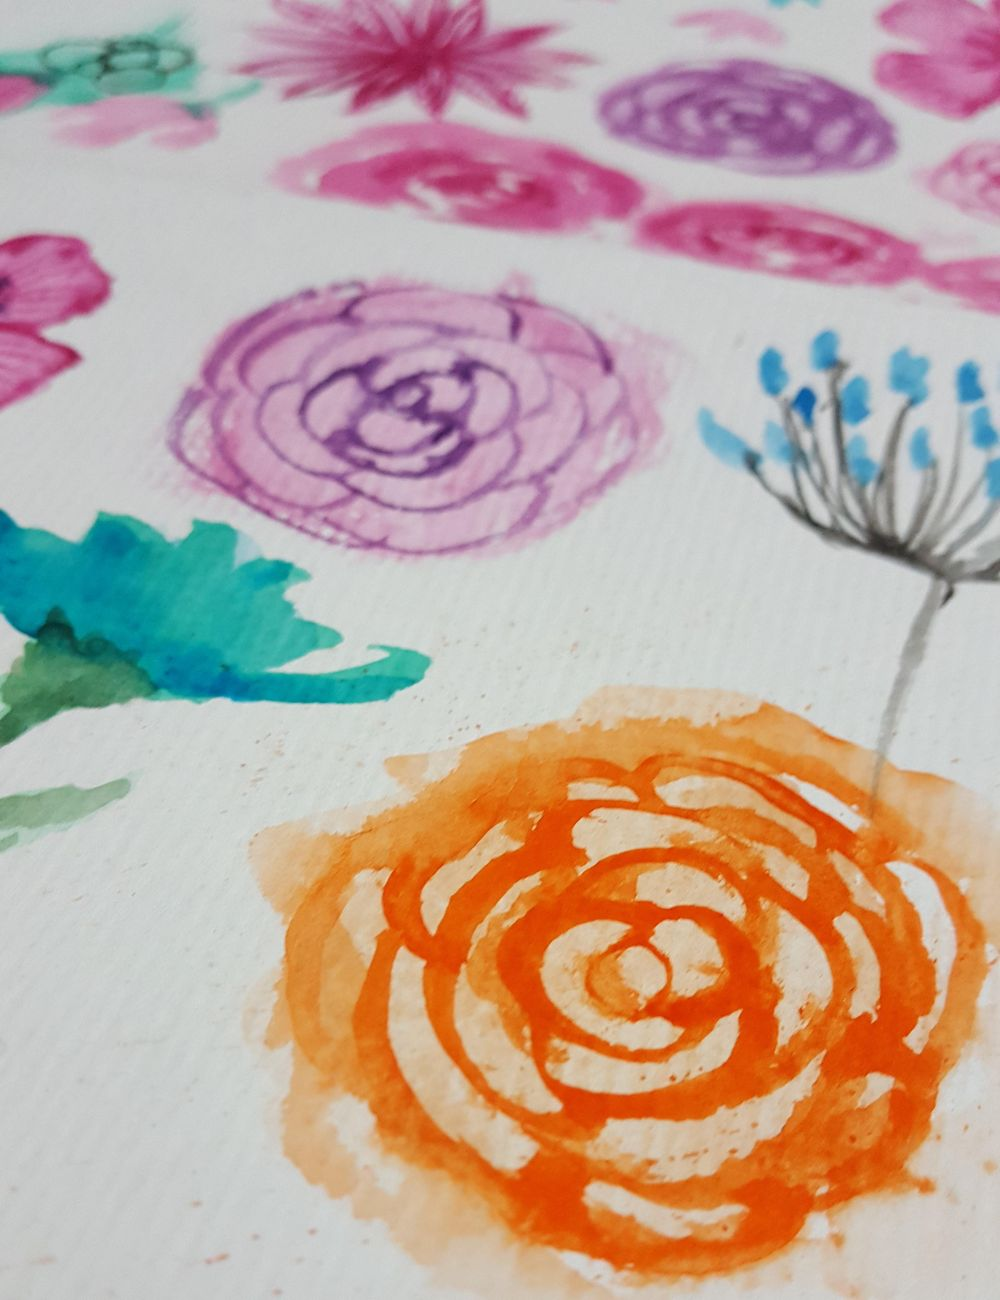 watercolor floral practicas - image 1 - student project